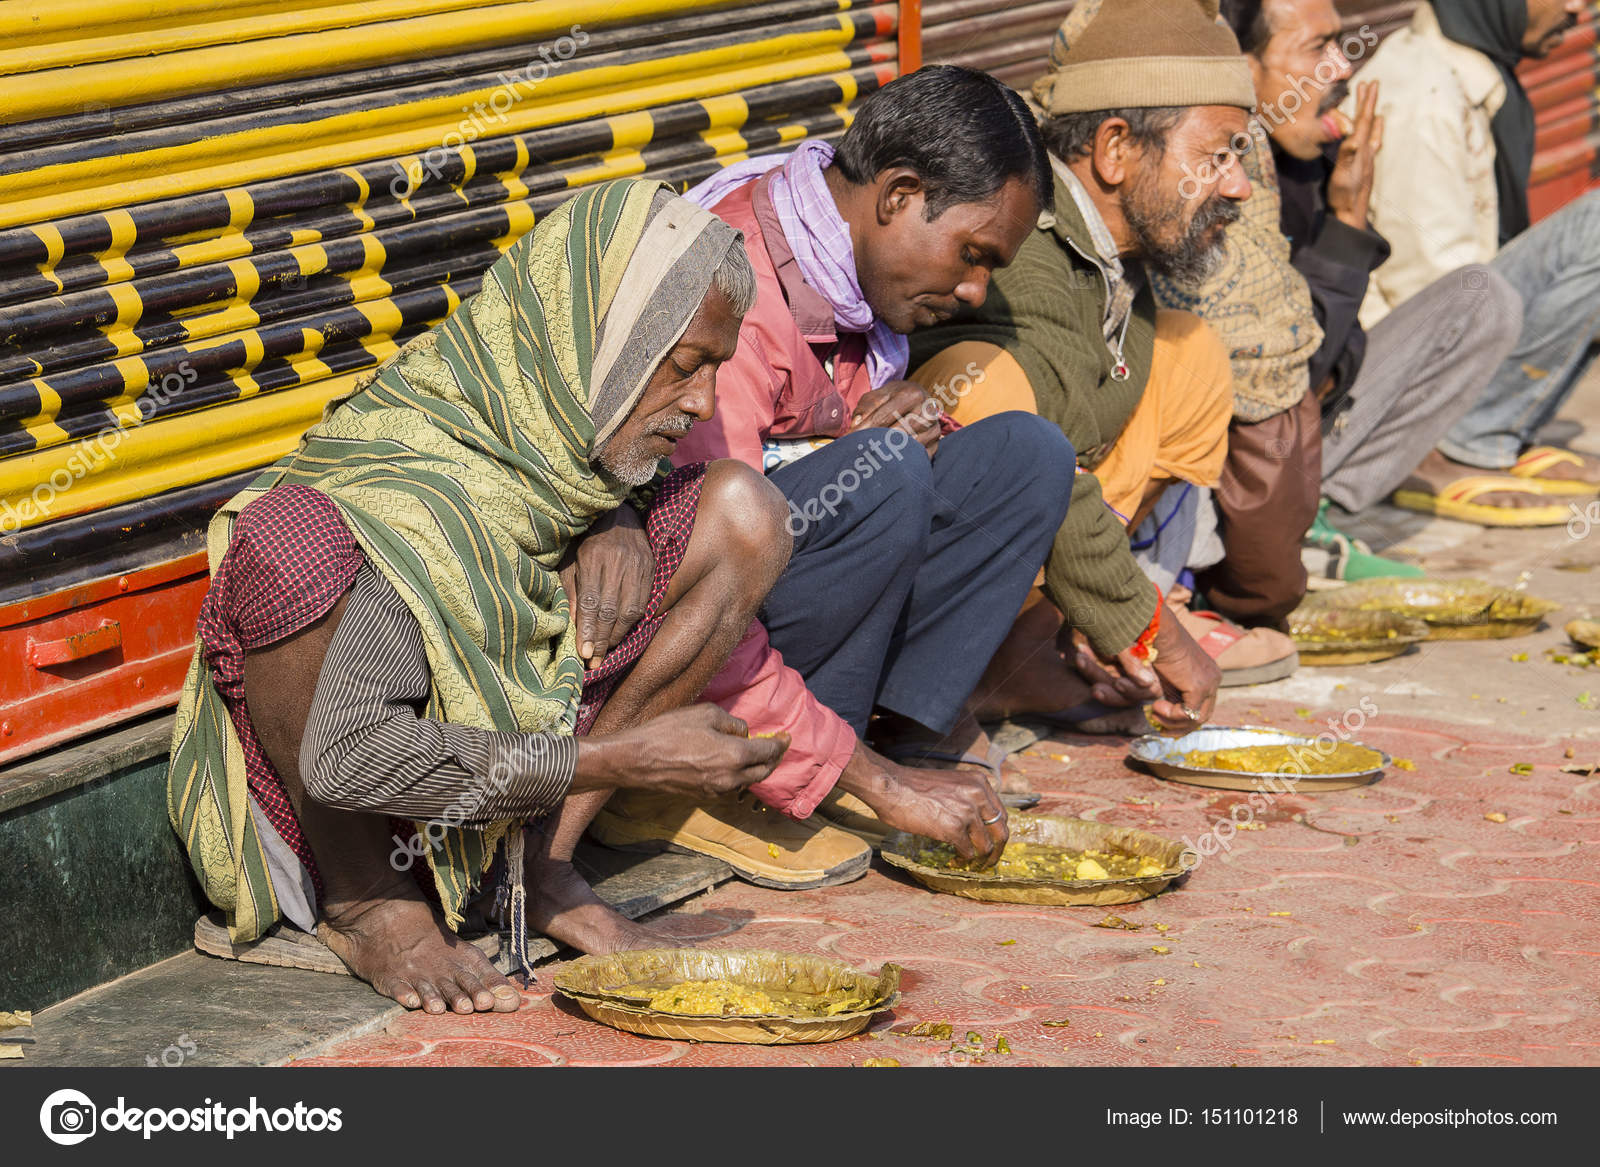 poor indian people eating free food at the street in